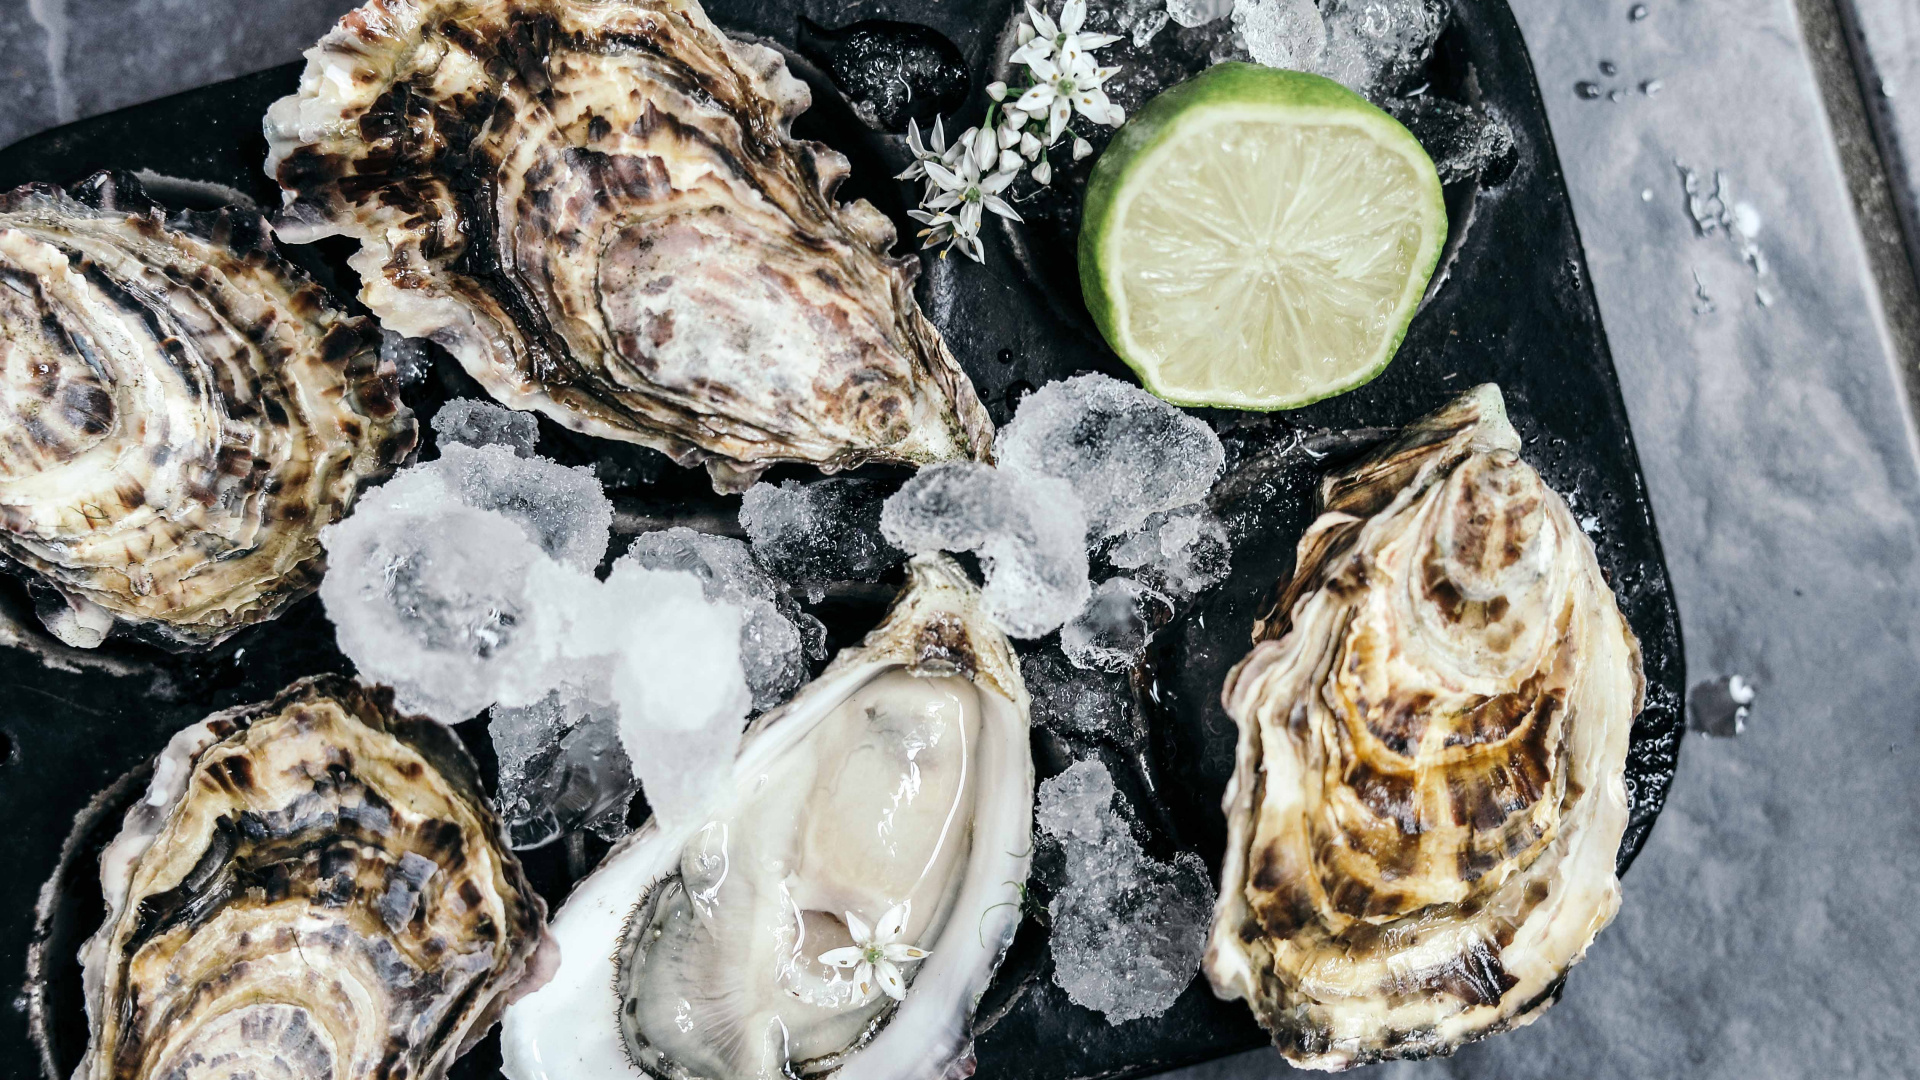 Win two places to an invite-only 'Ostrelier' oyster masterclass